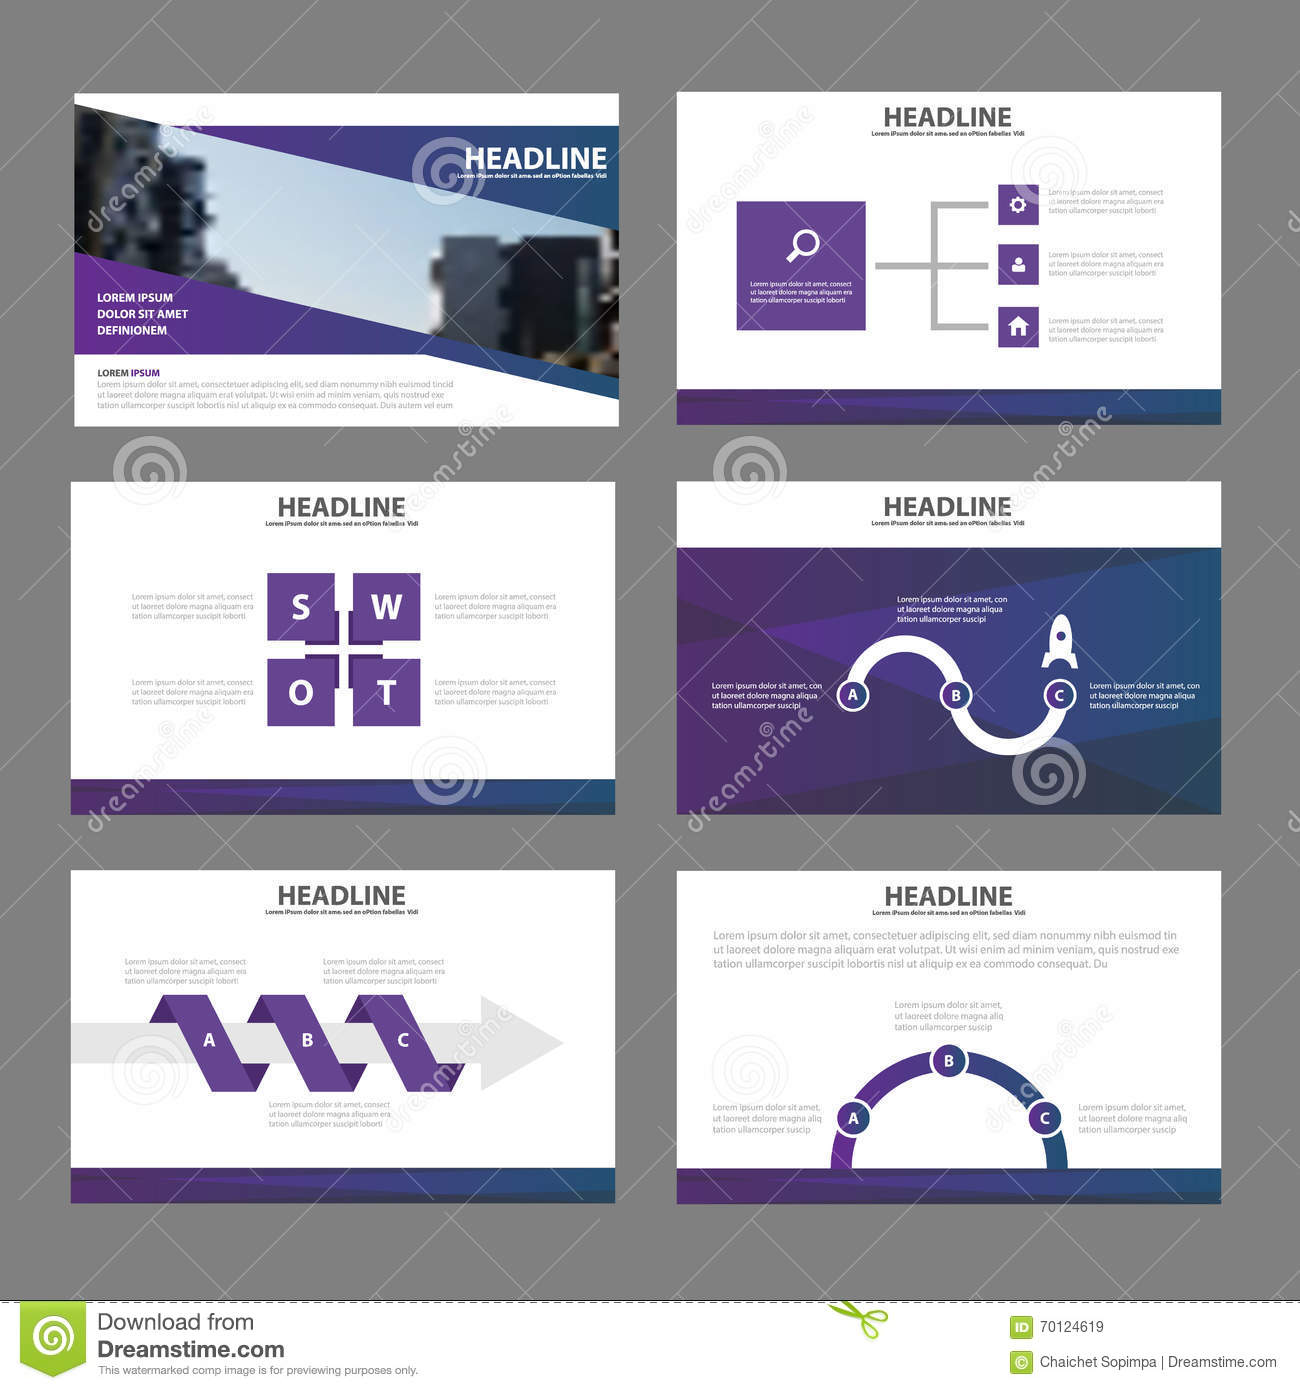 elegance purple presentation templates infographic elements flat elegance purple presentation templates infographic elements flat design set for brochure flyer leaflet marketing advertising